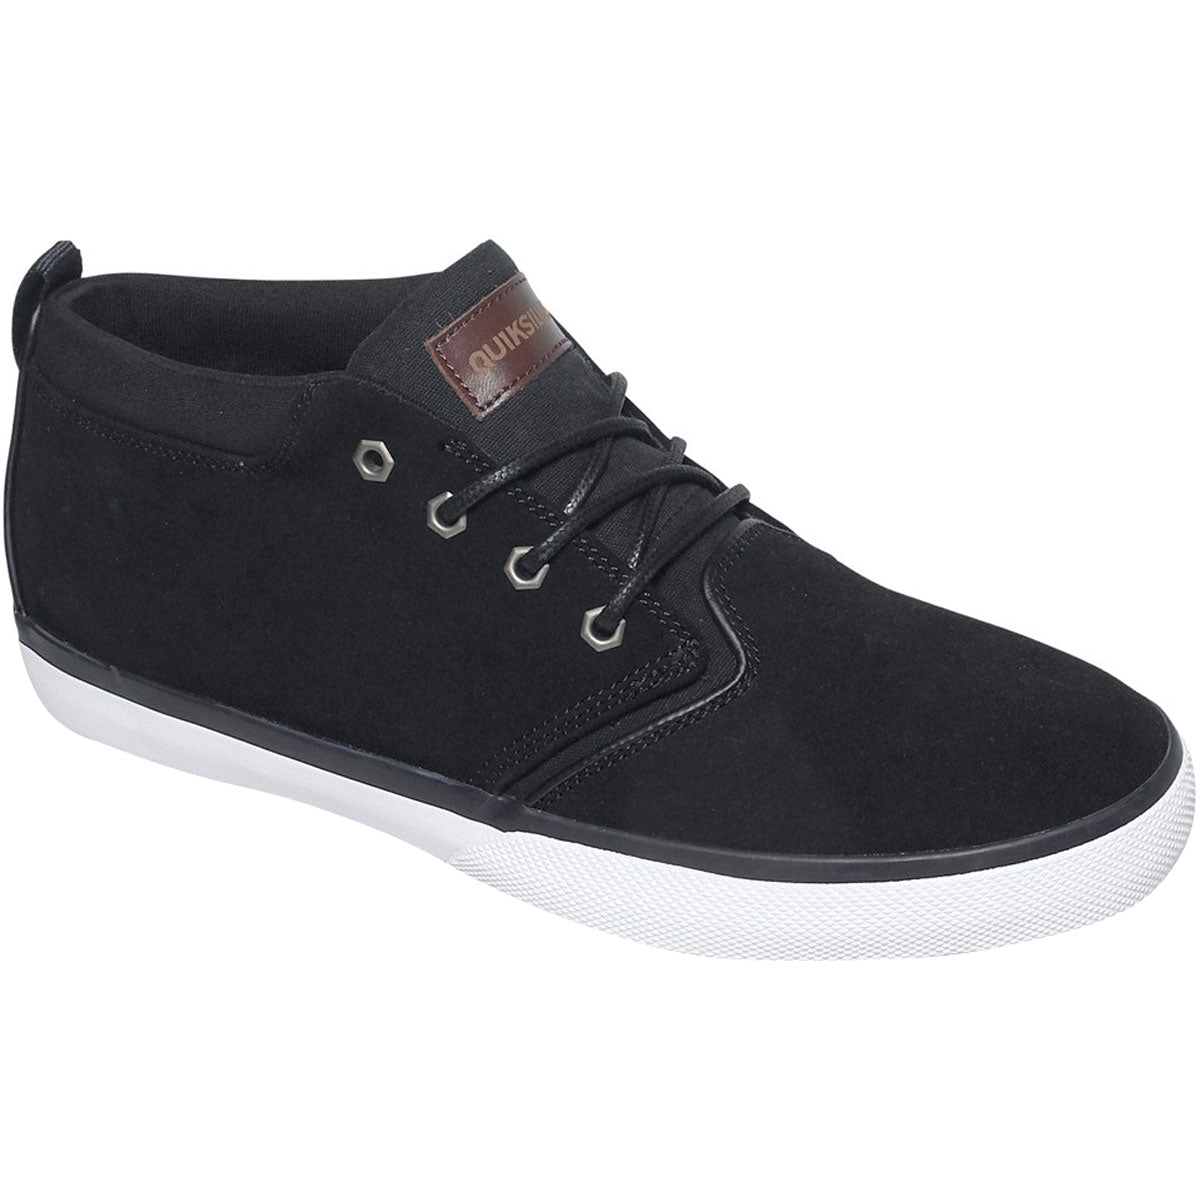 Quiksilver Griffin Suede 153 Men's Shoes Footwear (BRAND NEW)